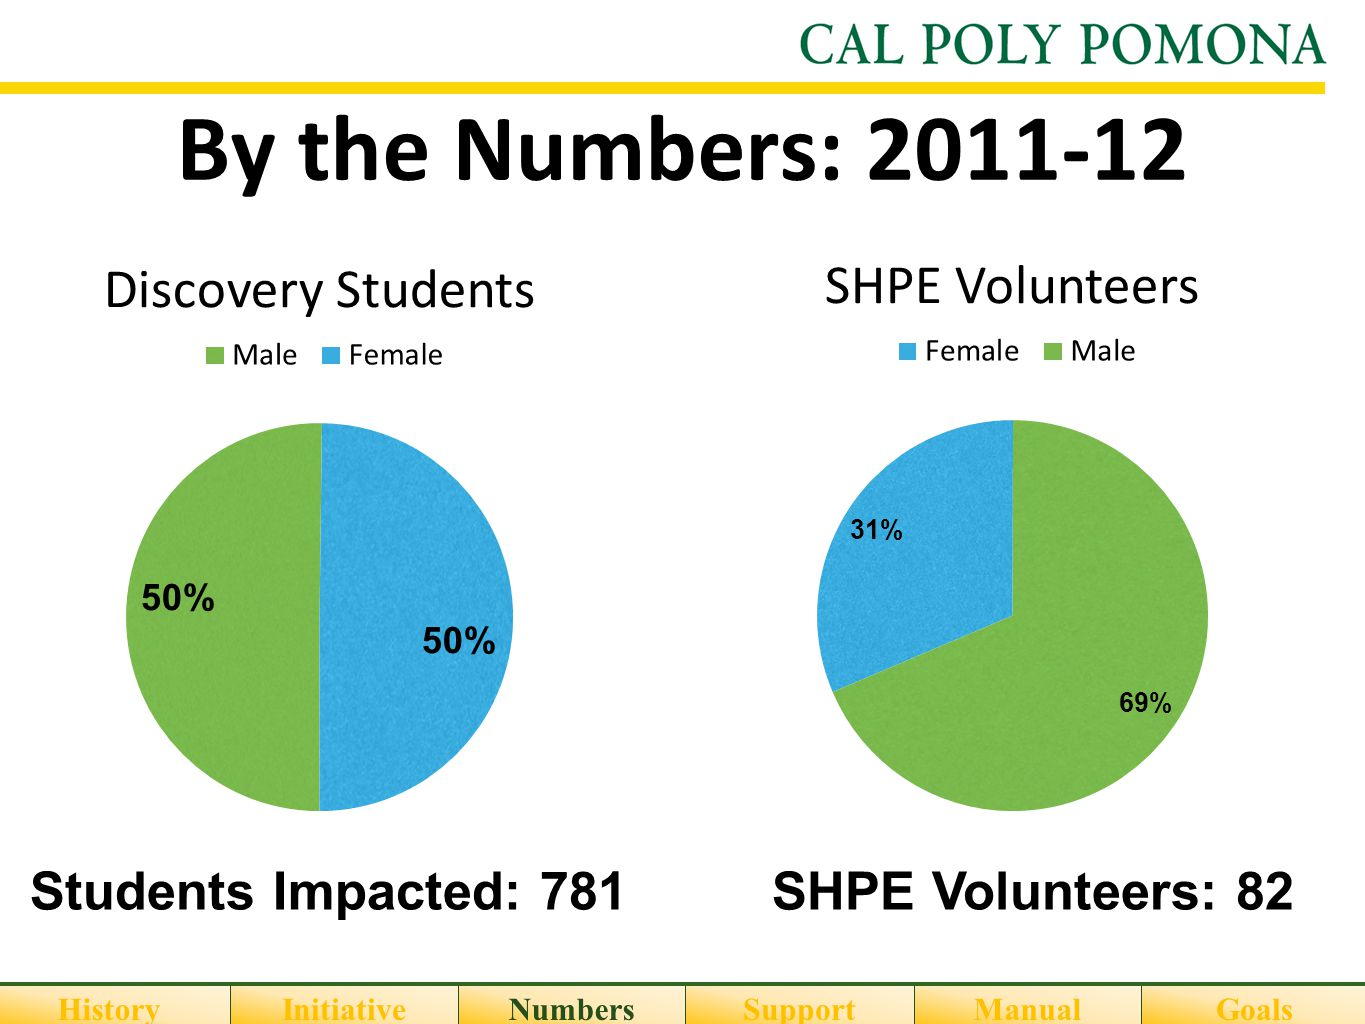 By the Numbers: 2011-12 Students Impacted: 781SHPE Volunteers: 82 HistoryInitiativeNumbersSupportGoalsManual